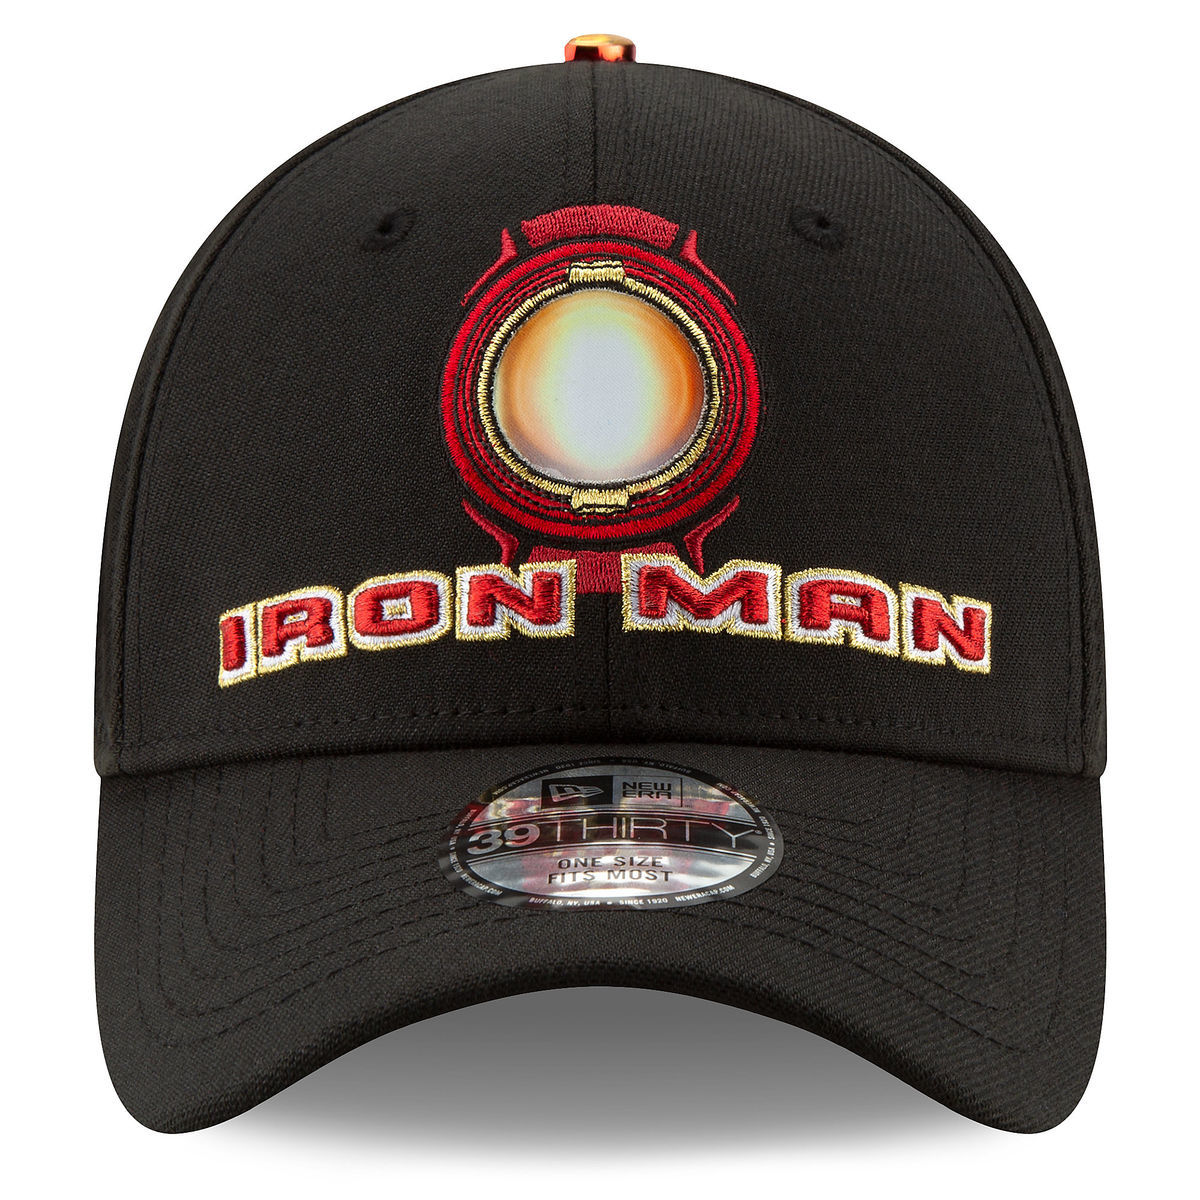 Limited Edition Collector Boxed Iron Man Cap by New Era - Marvel Studios  Crew Cap Collection 11d03be3d0b